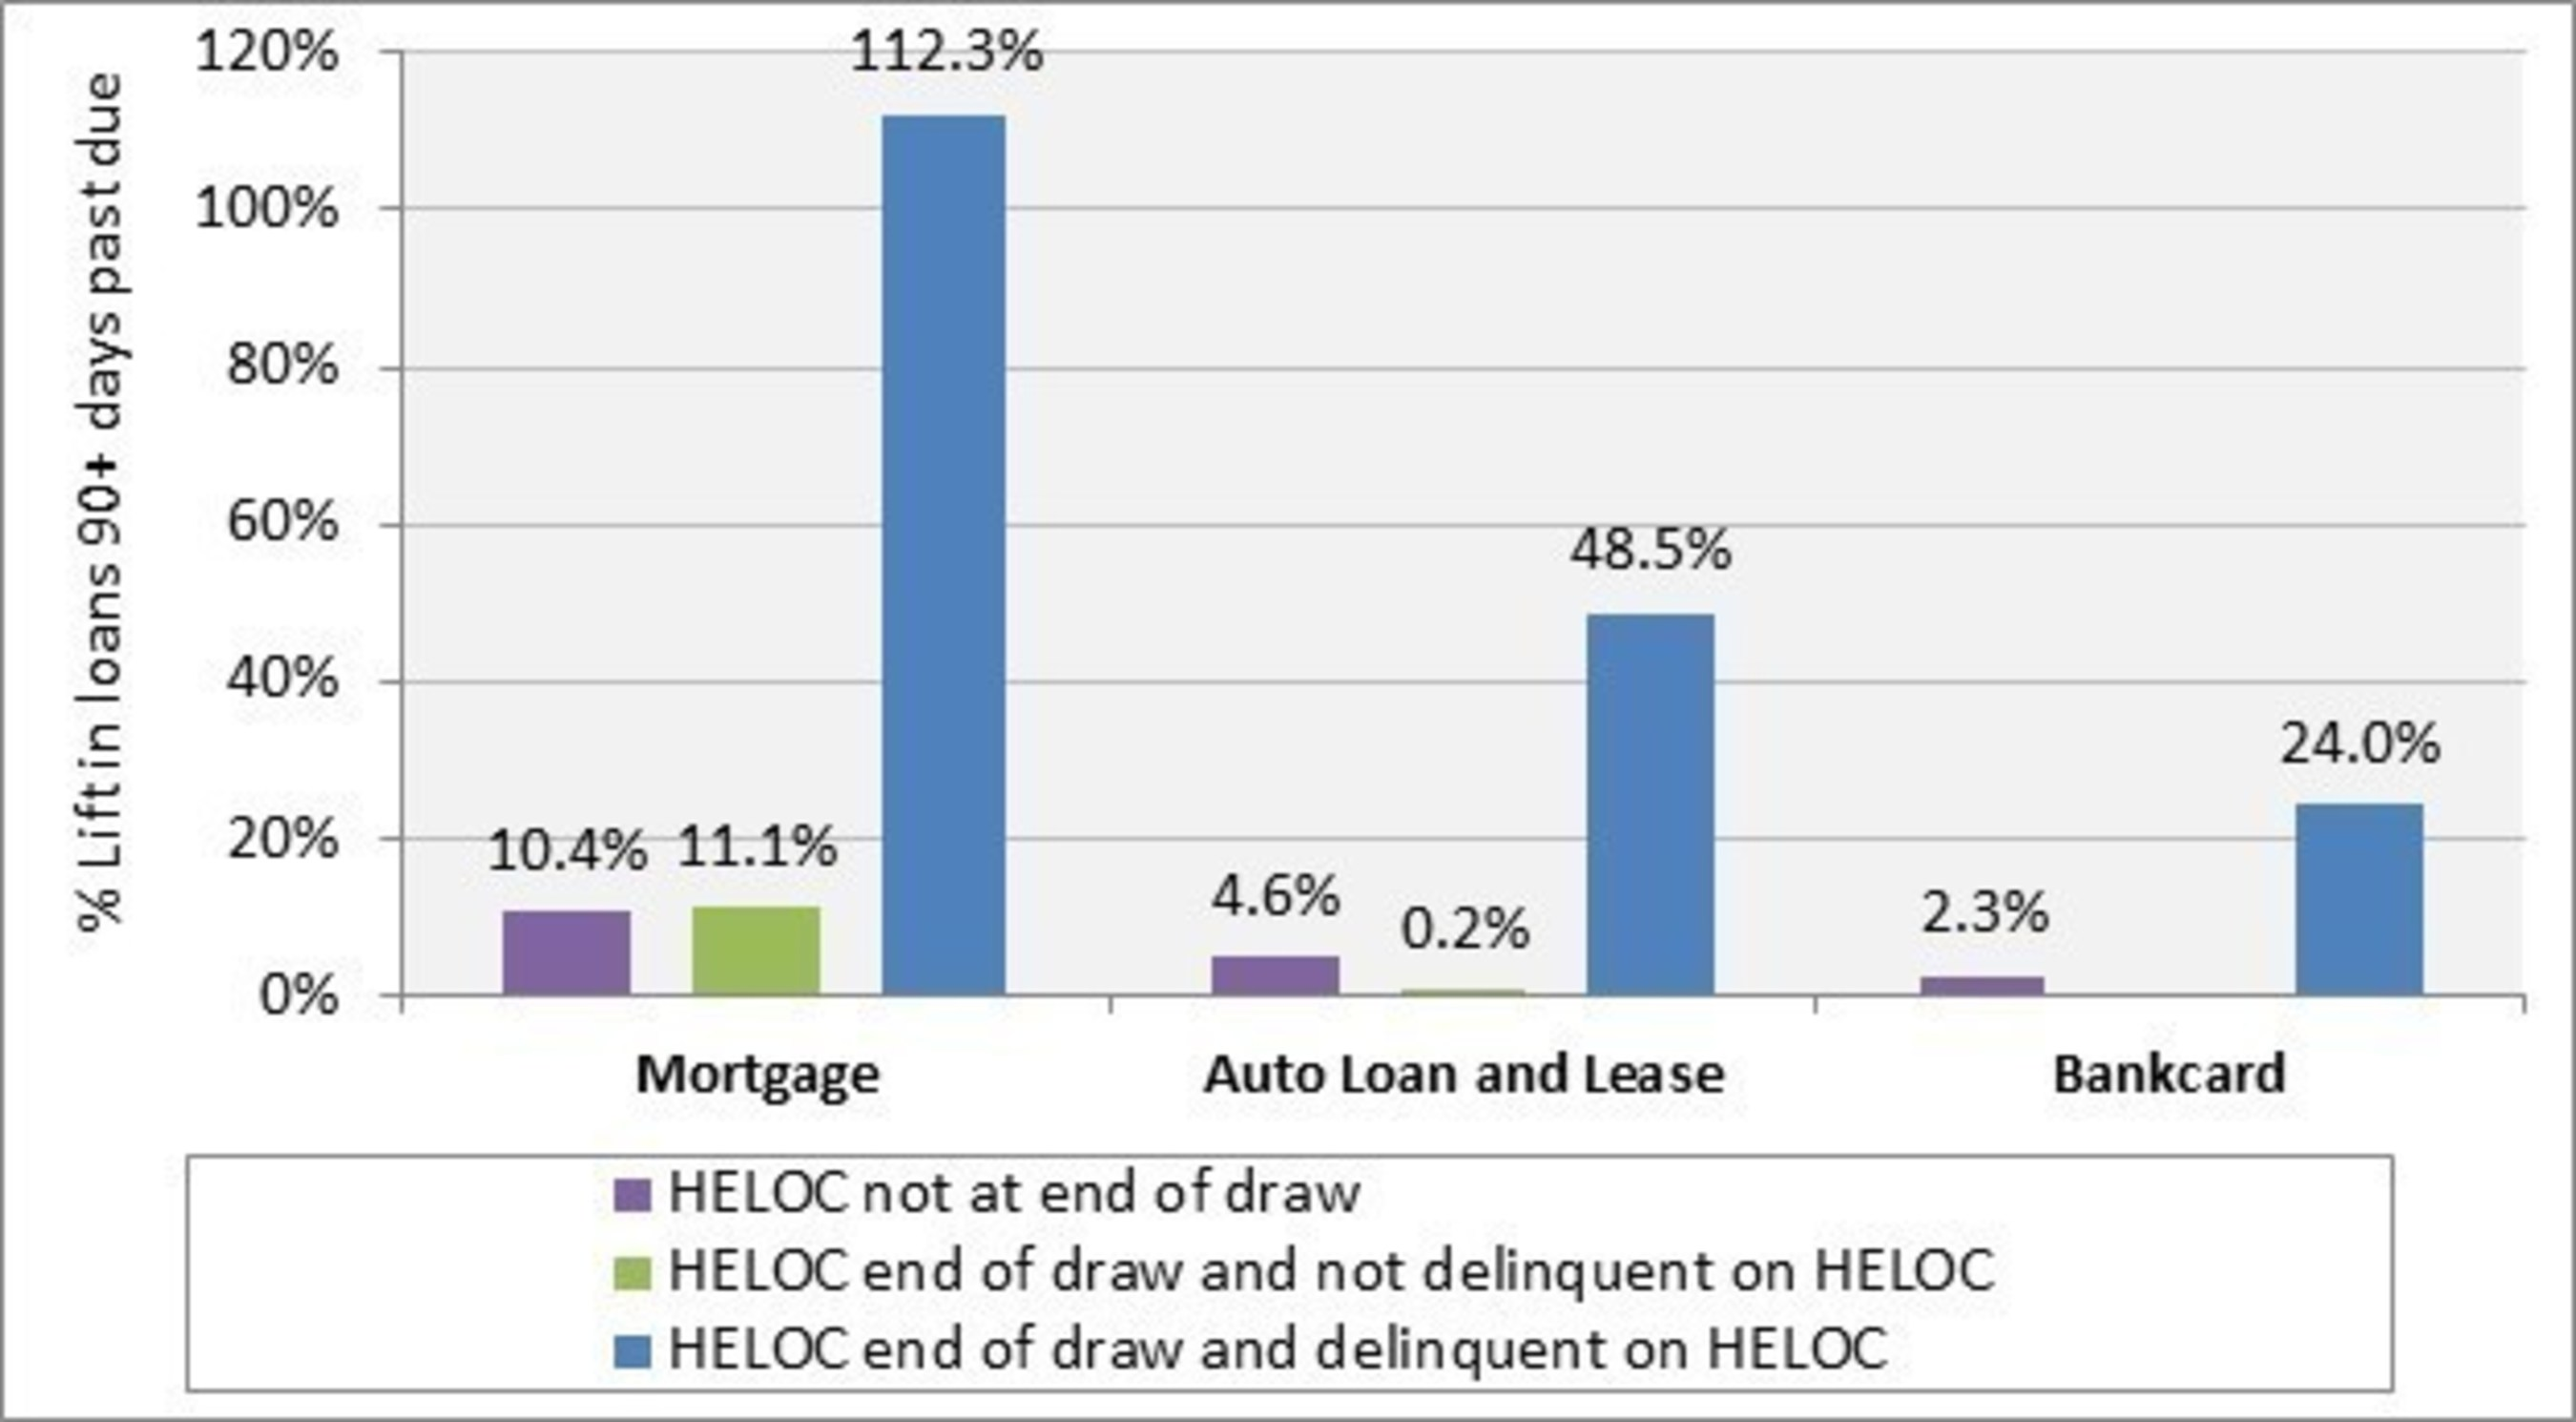 Experian study also finds that the consumers that are coming to the repayment phase of their HELOC are much ...